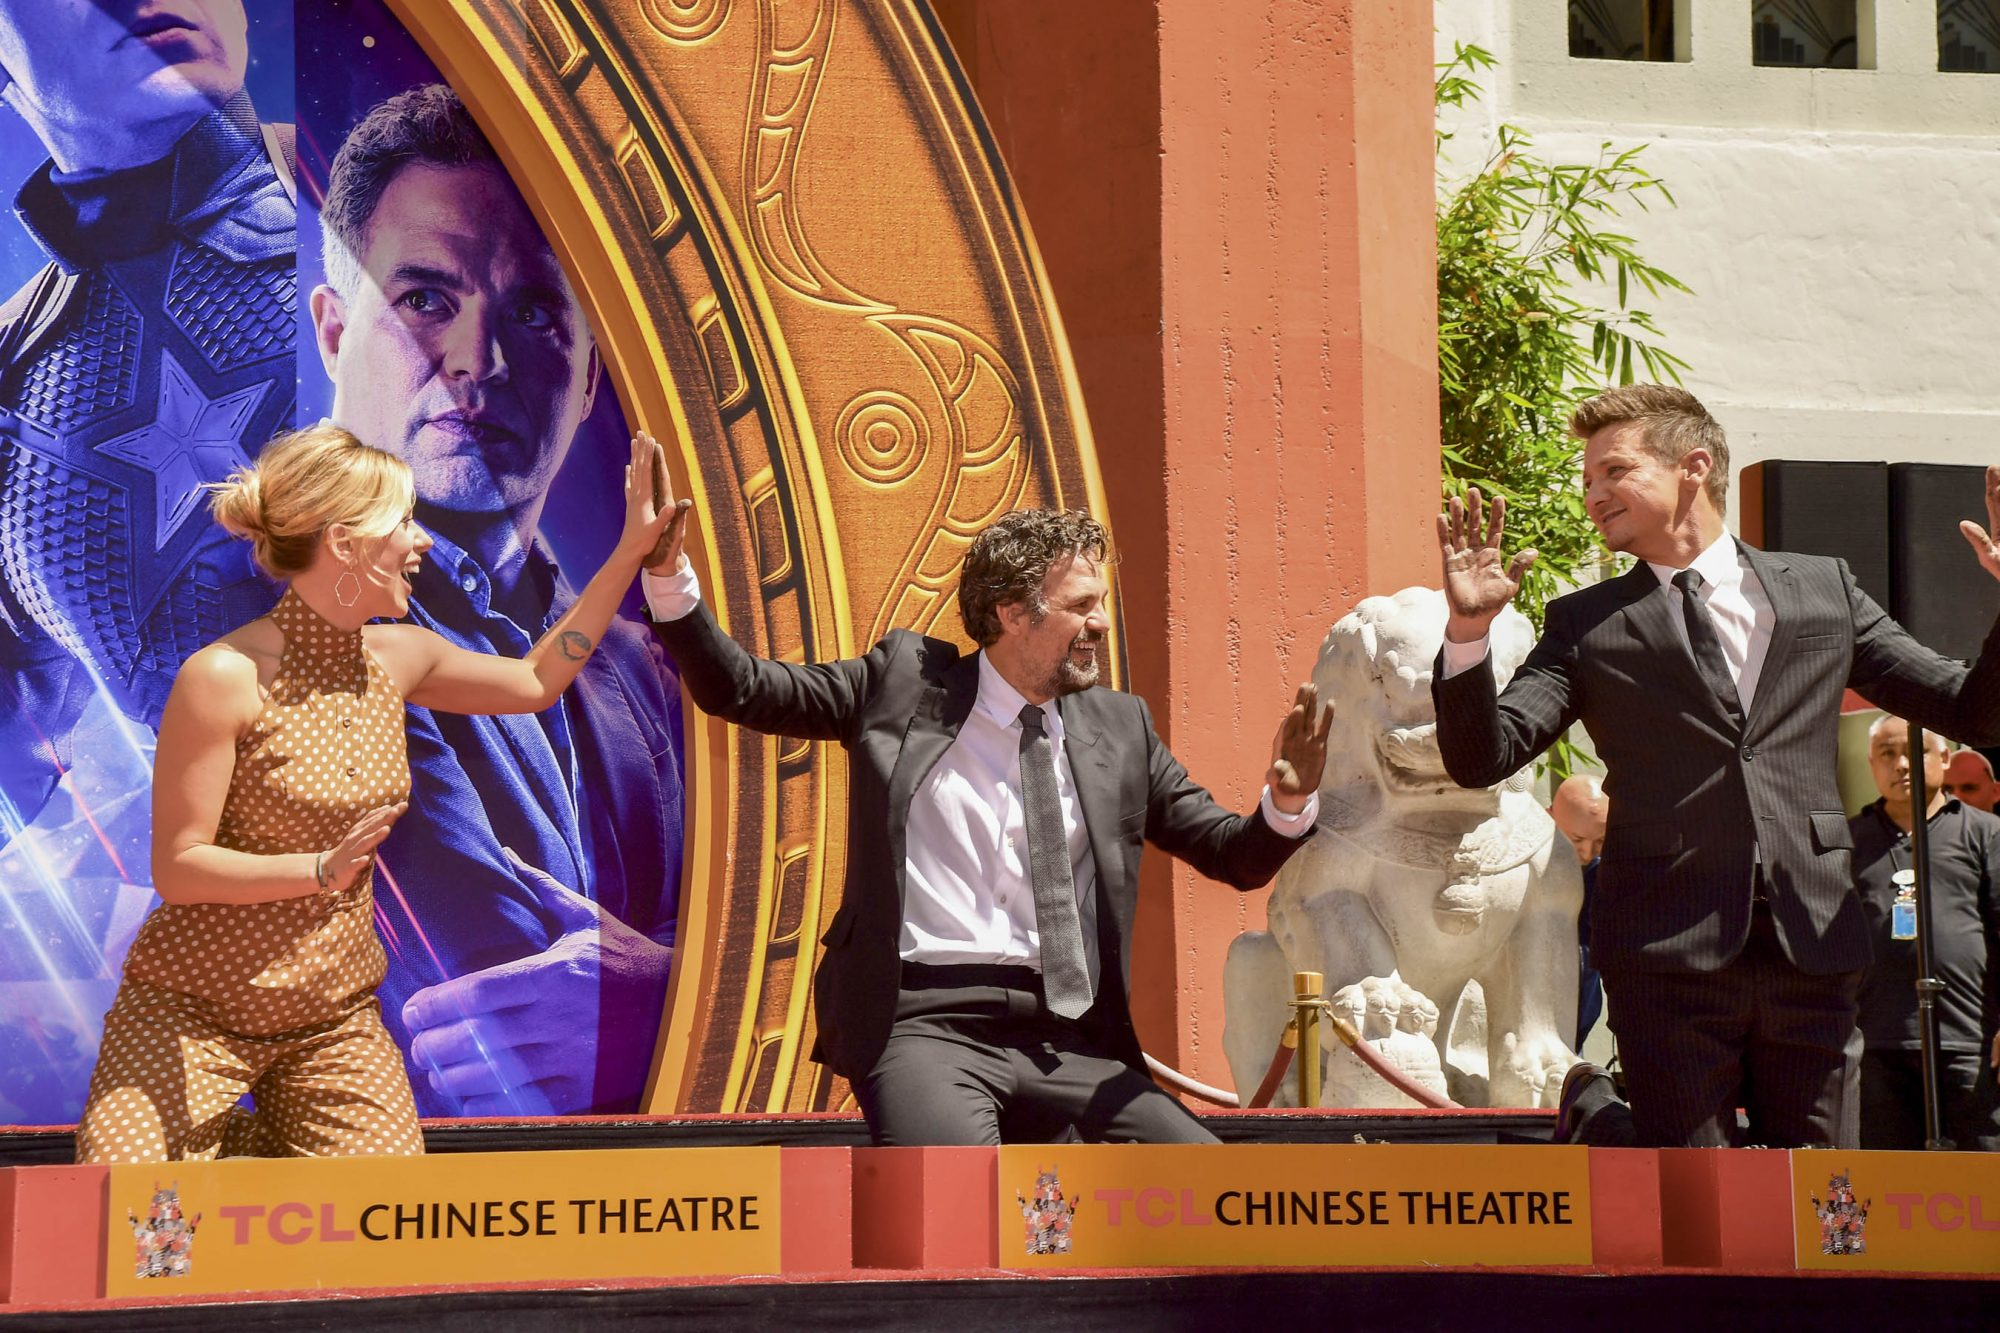 HOLLYWOOD, CALIFORNIA - APRIL 23: Scarlett Johansson, Mark Ruffalo and Jeremy Renner pose at the Marvel Studios' 'Avengers: Endgame' Cast Place Their Hand Prints In Cement At TCL Chinese Theatre IMAX Forecourt at TCL Chinese Theatre IMAX on April 23, 2019 in Hollywood, California. (Photo by Matt Winkelmeyer/Getty Images)